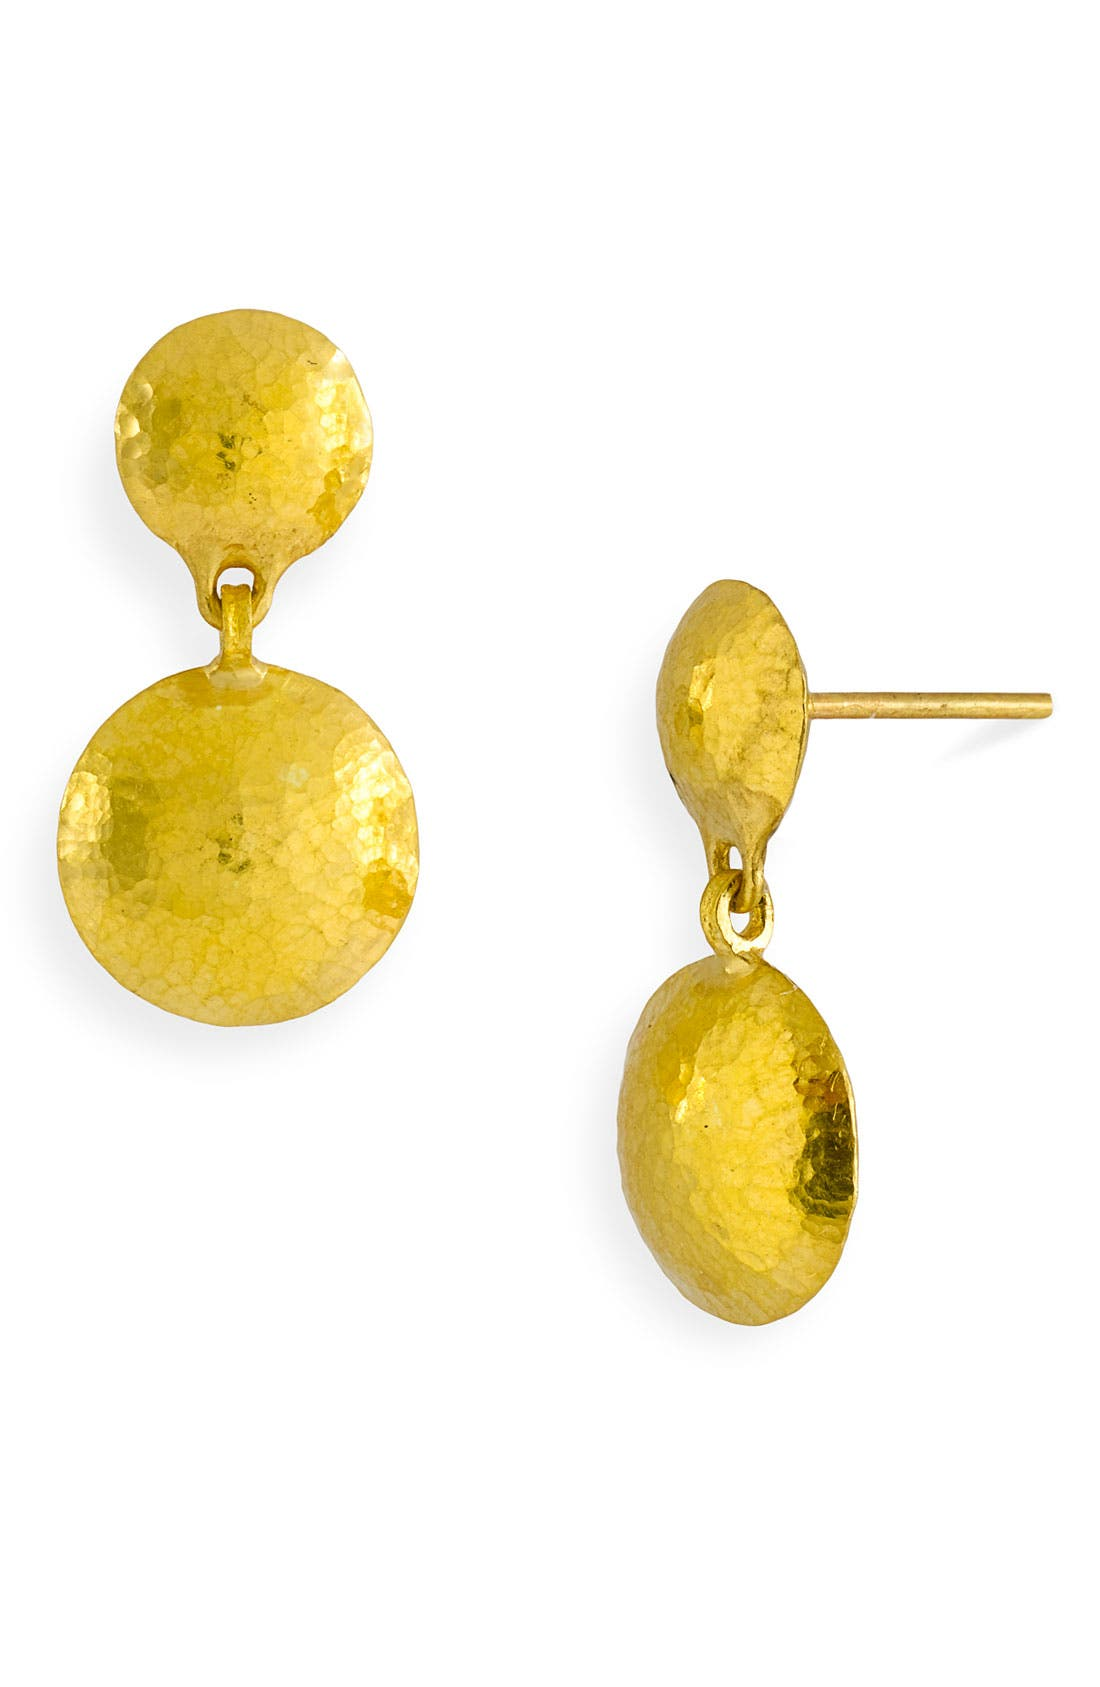 Main Image - Gurhan 'Lentil' Double Disc Drop Earrings